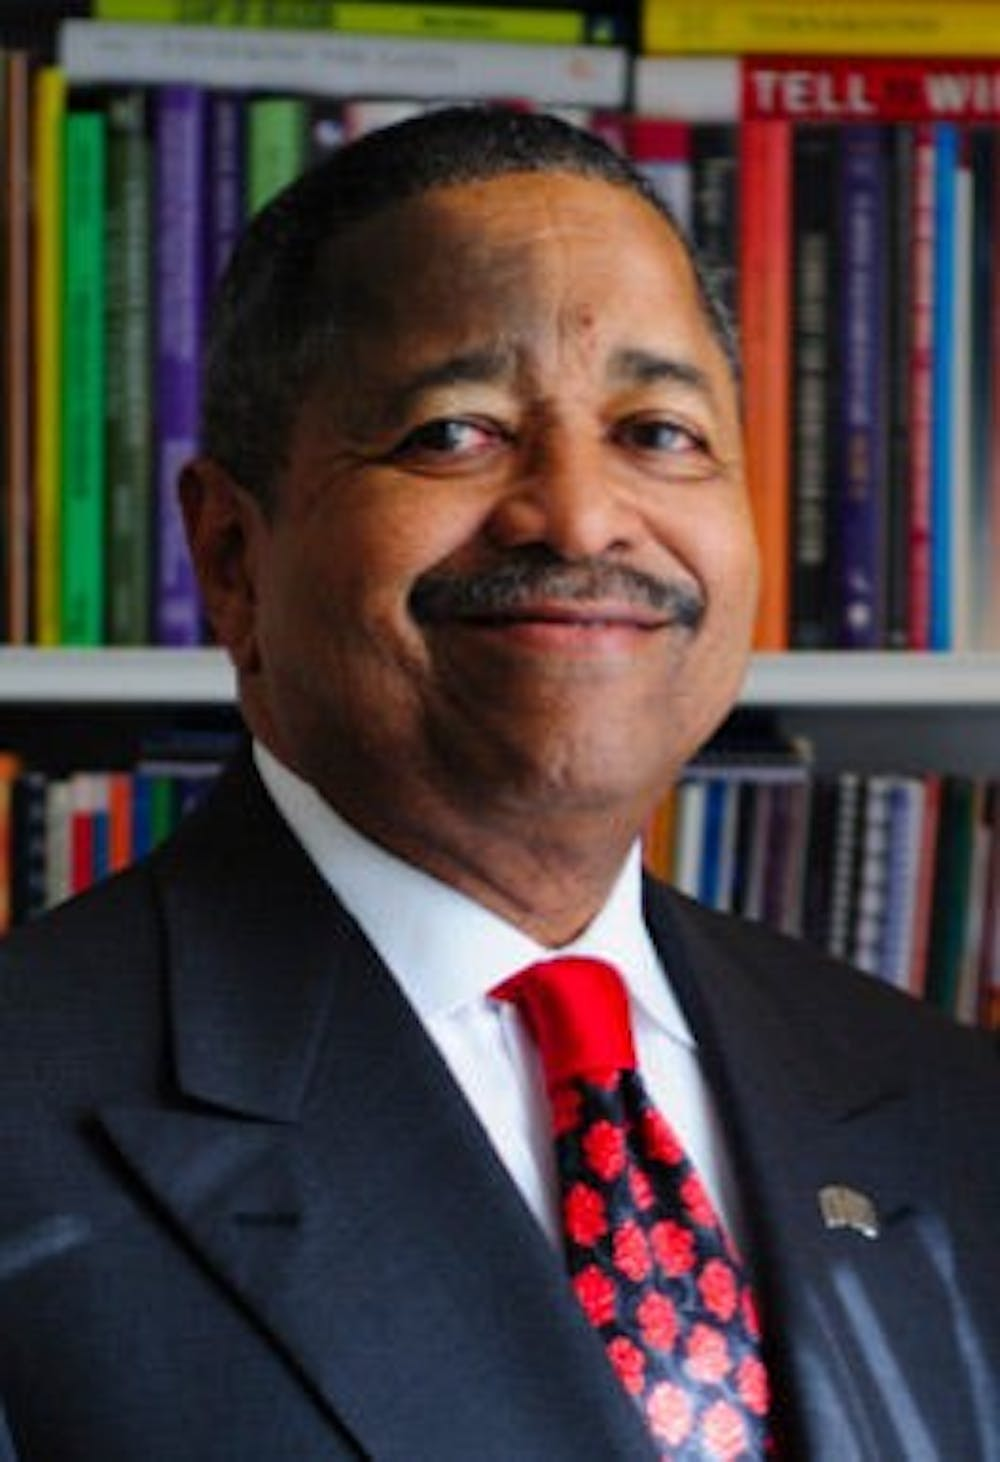 Reviewing Rod: President McDavis pledged to improve local schools in 2004